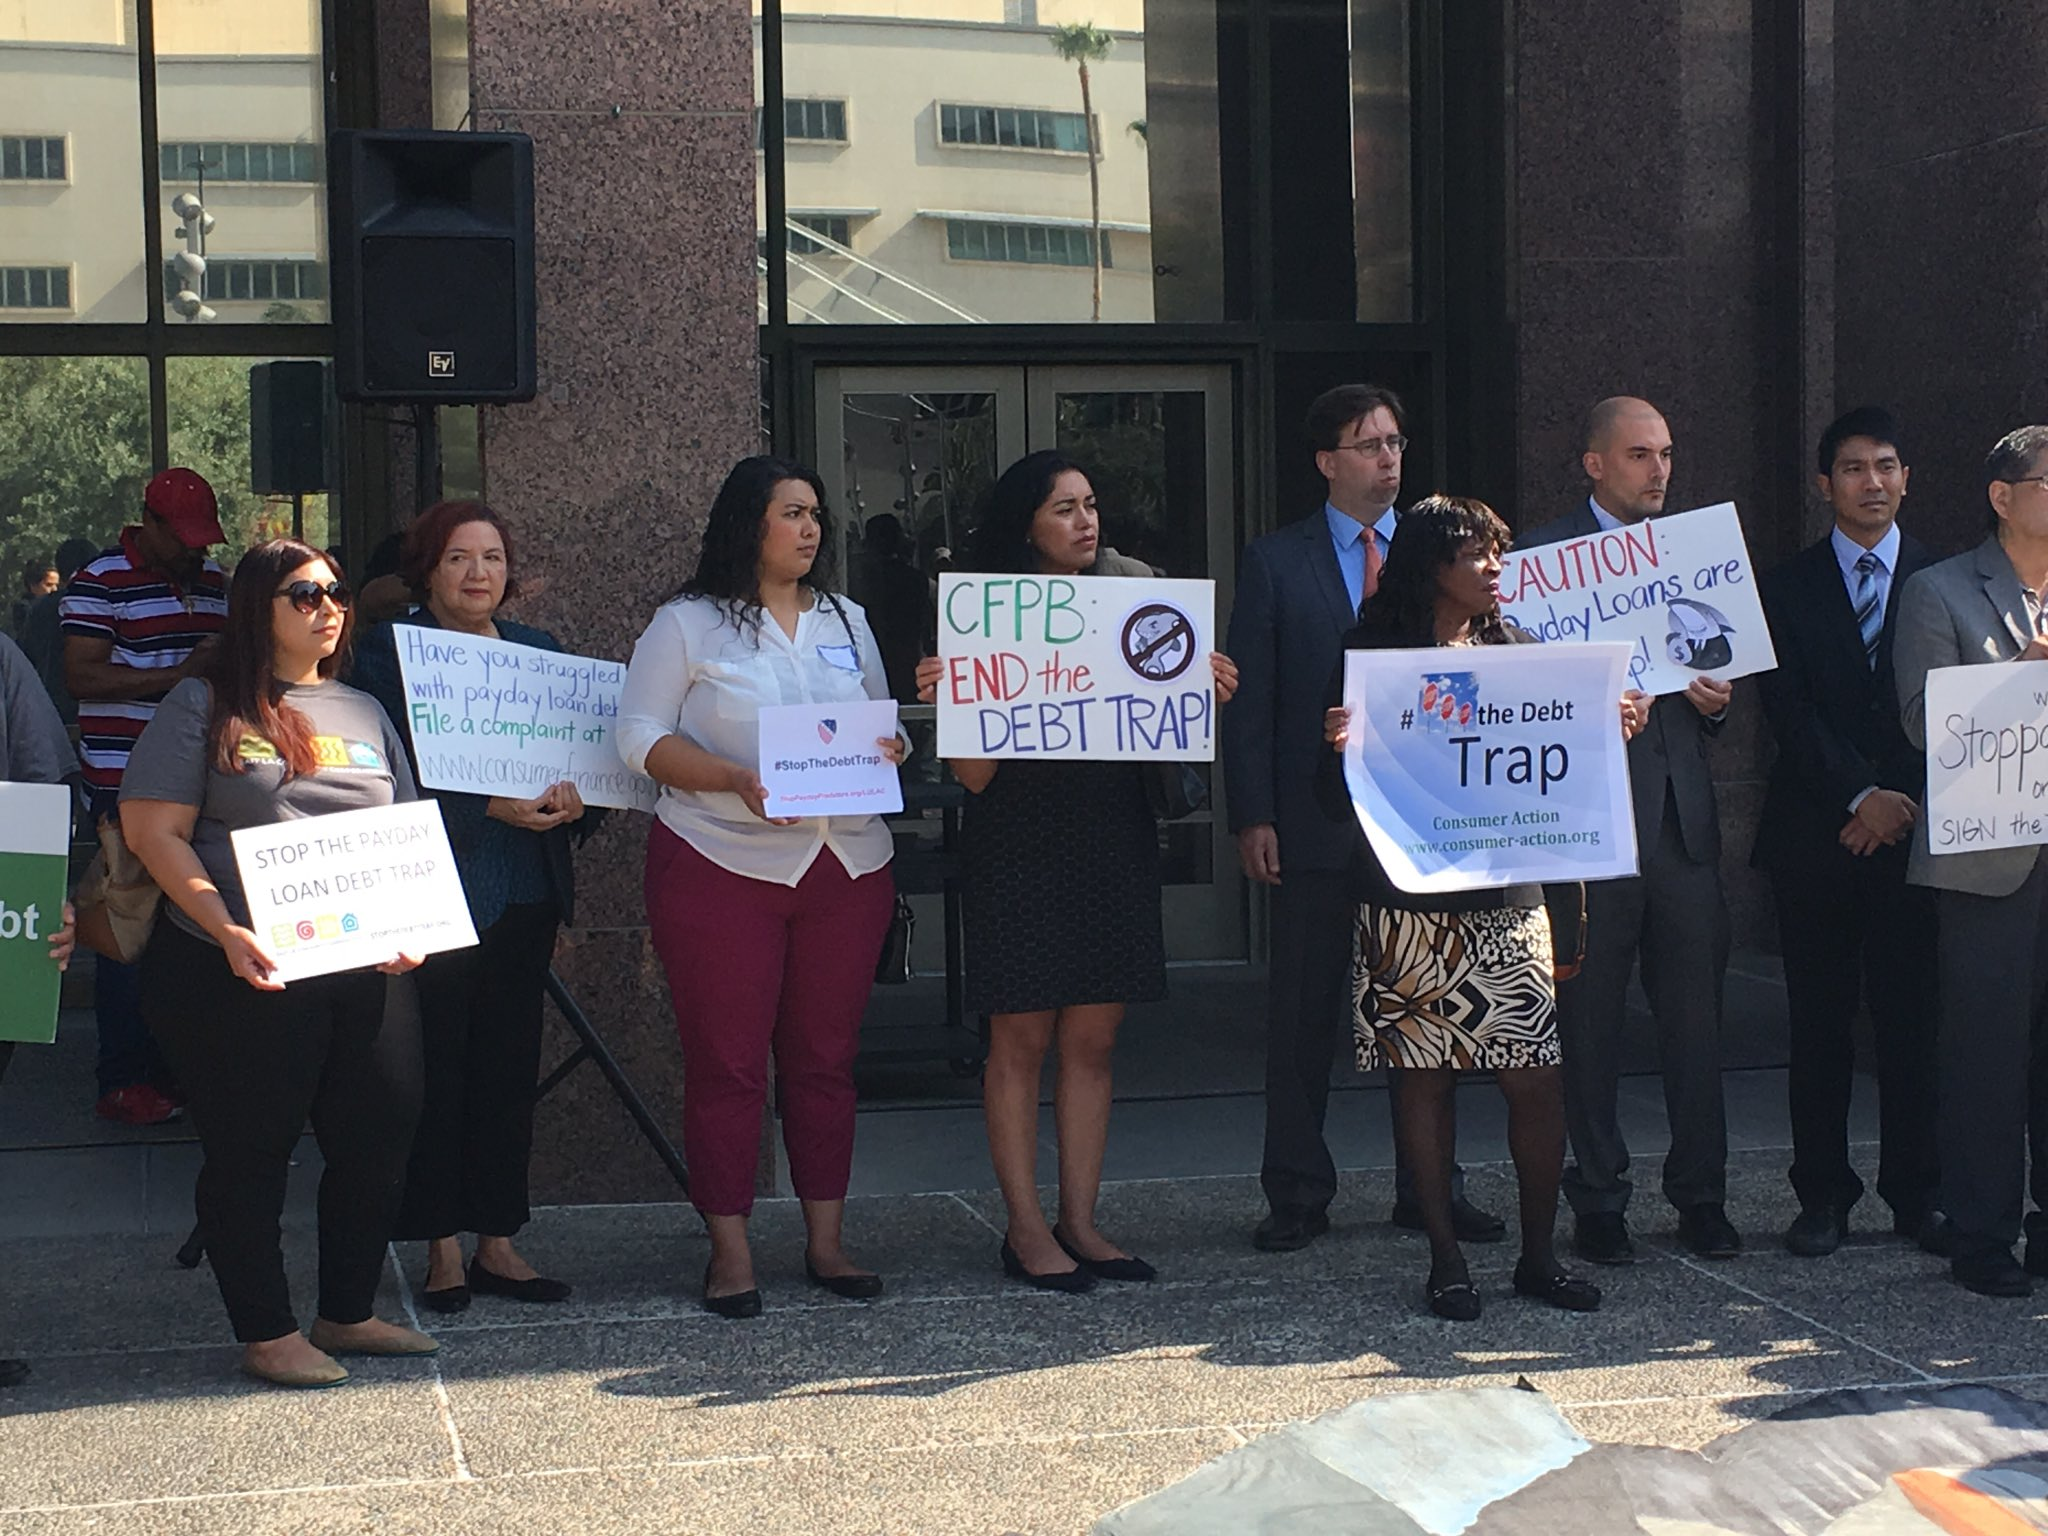 Payday lenders prey on vulnerable communities and trap them in a cycle of debt. Time for @CFPB to #StopTheDebtTrap https://t.co/2Ju4Tl7VN3